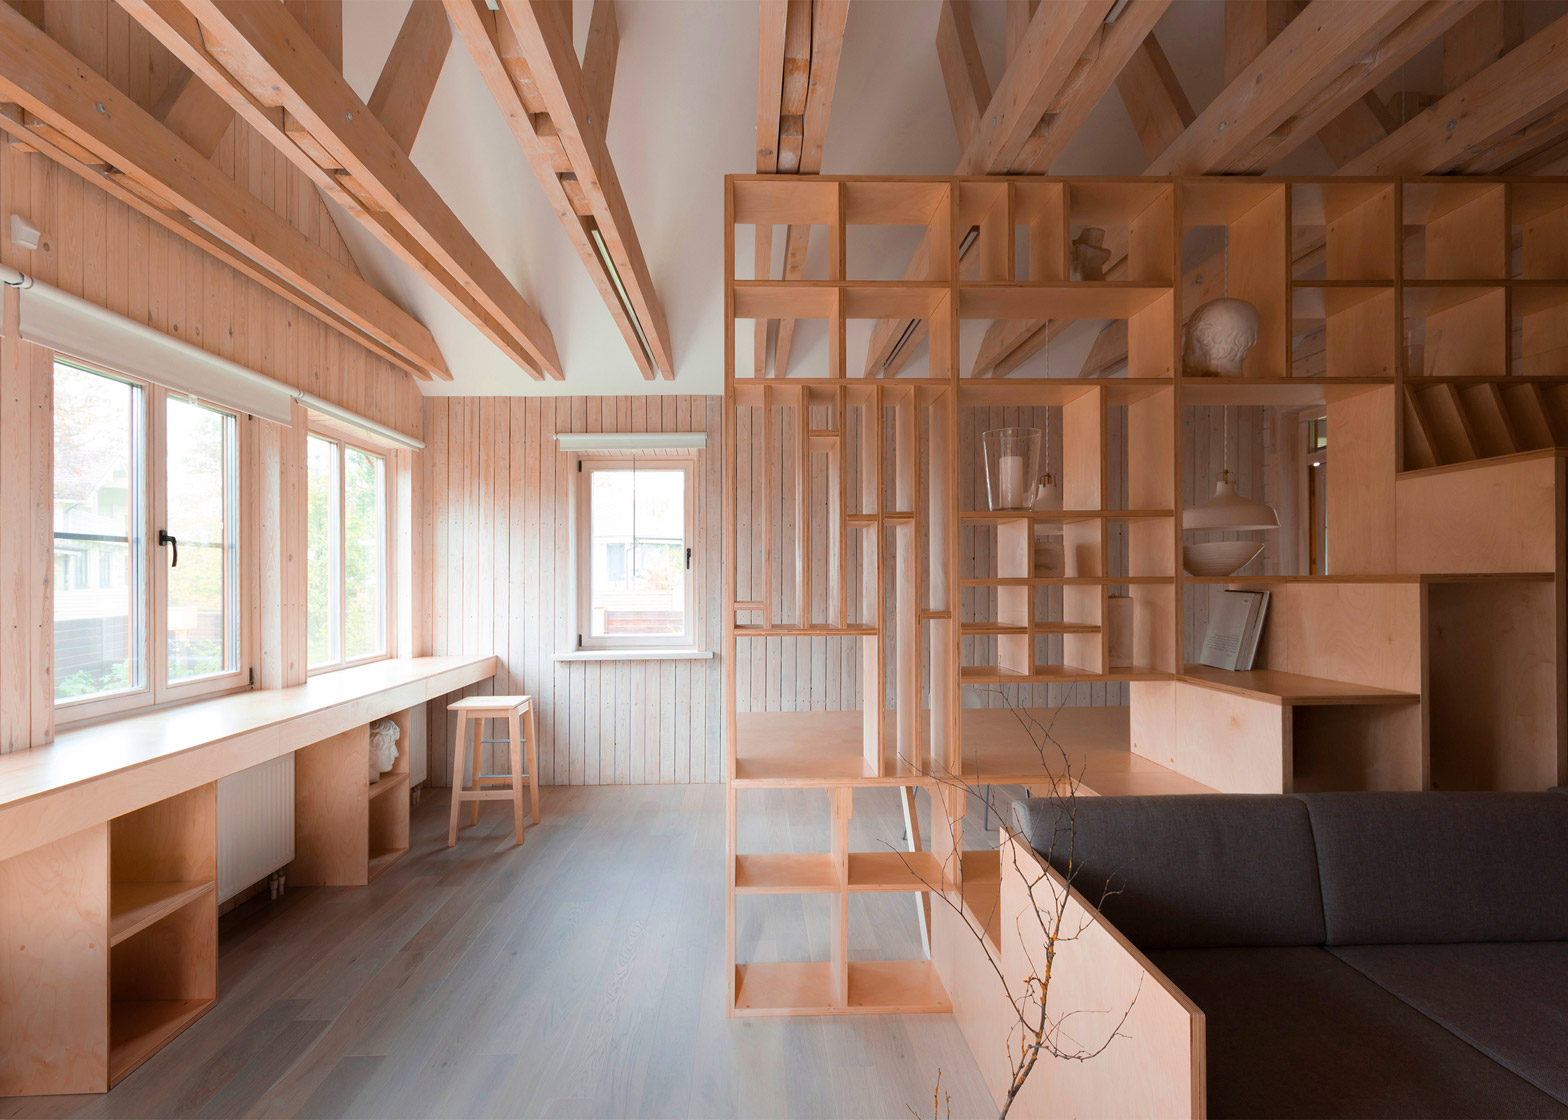 A Plywood Partition Separates Working And Relaxation Areas Inside This Artistu0027s  Studio In Moscow, Incorporating Both Furniture And Shelves For Tidying Away  ...